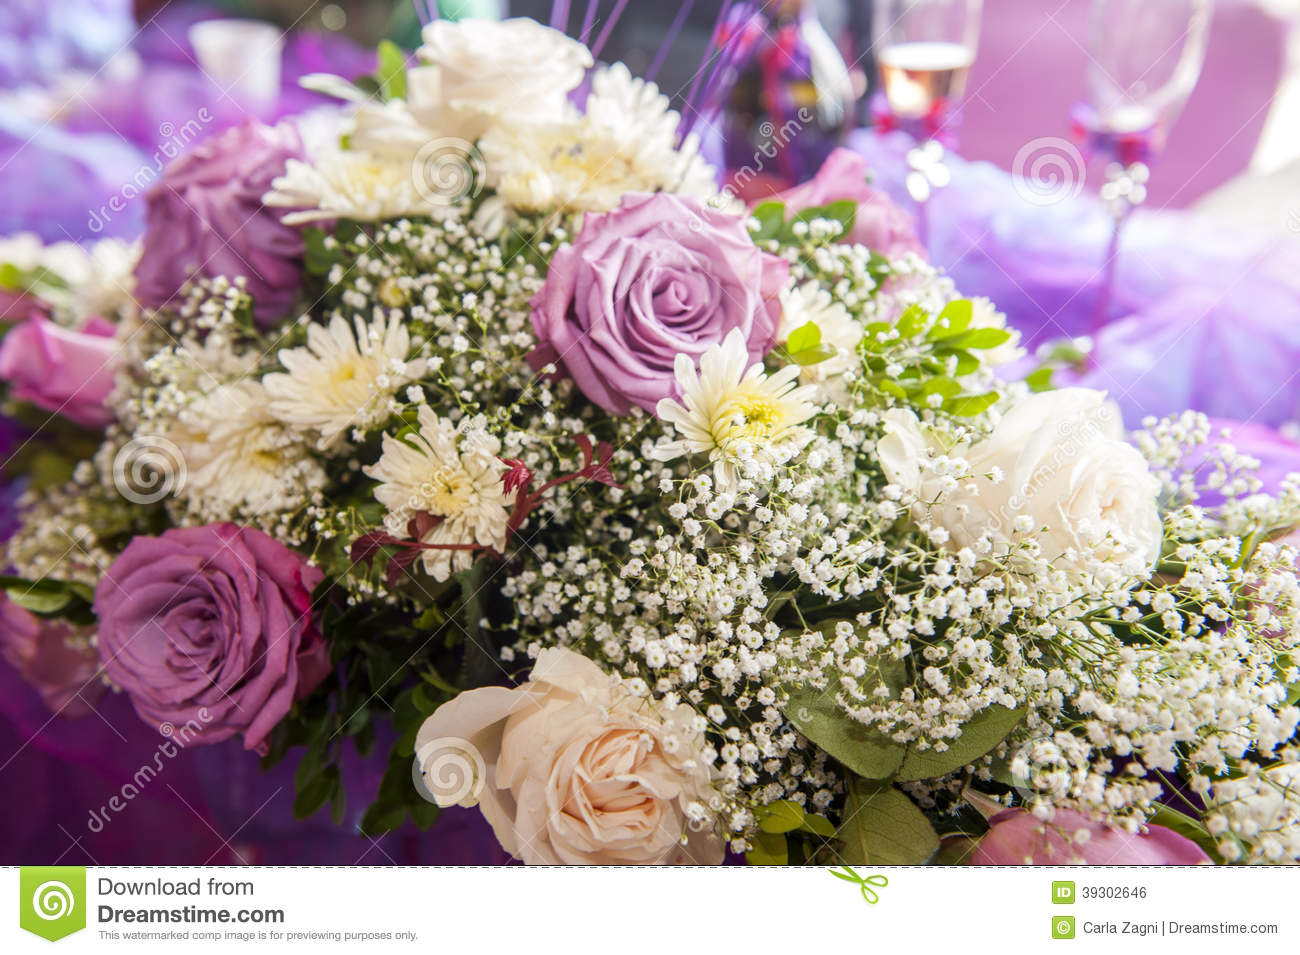 Traditional Wedding Flowers Pictures : Traditional wedding flowers stock photo image